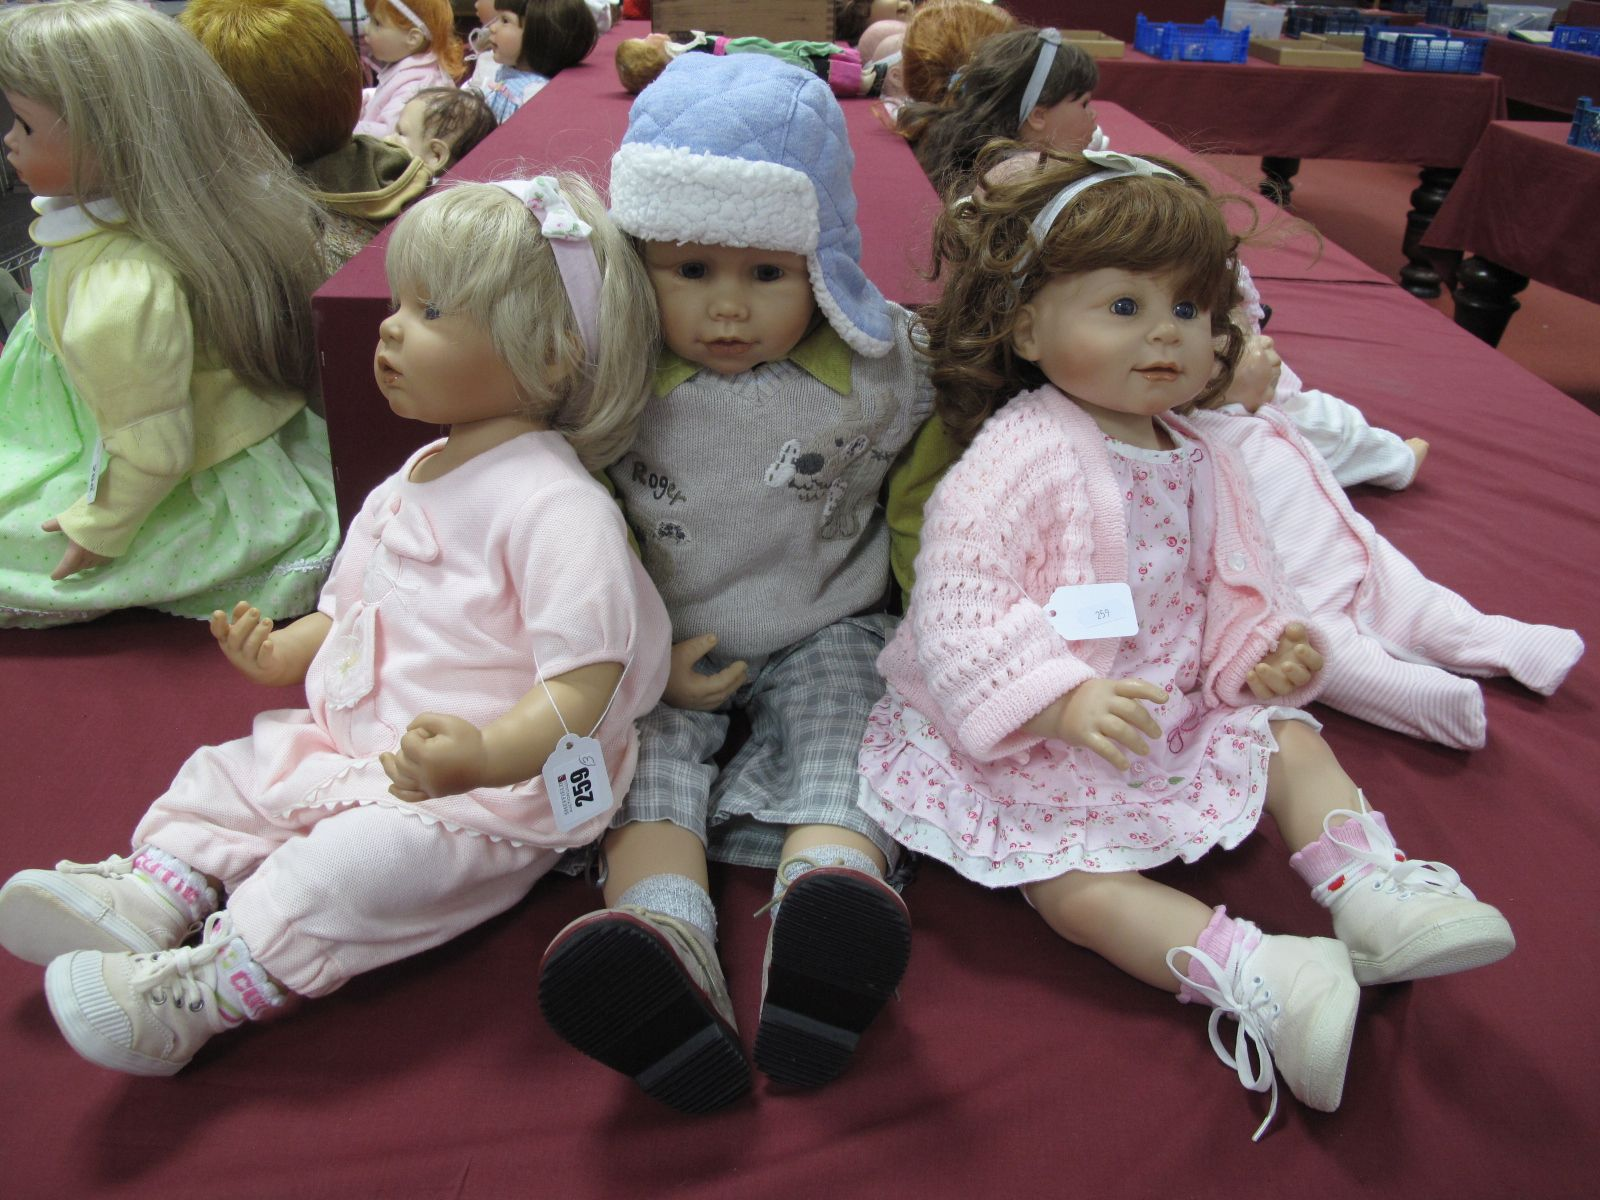 A W. Hanl Doll, marked 22K, 74cm high, two others No 986, 56cm high and No 927, 54cm high both